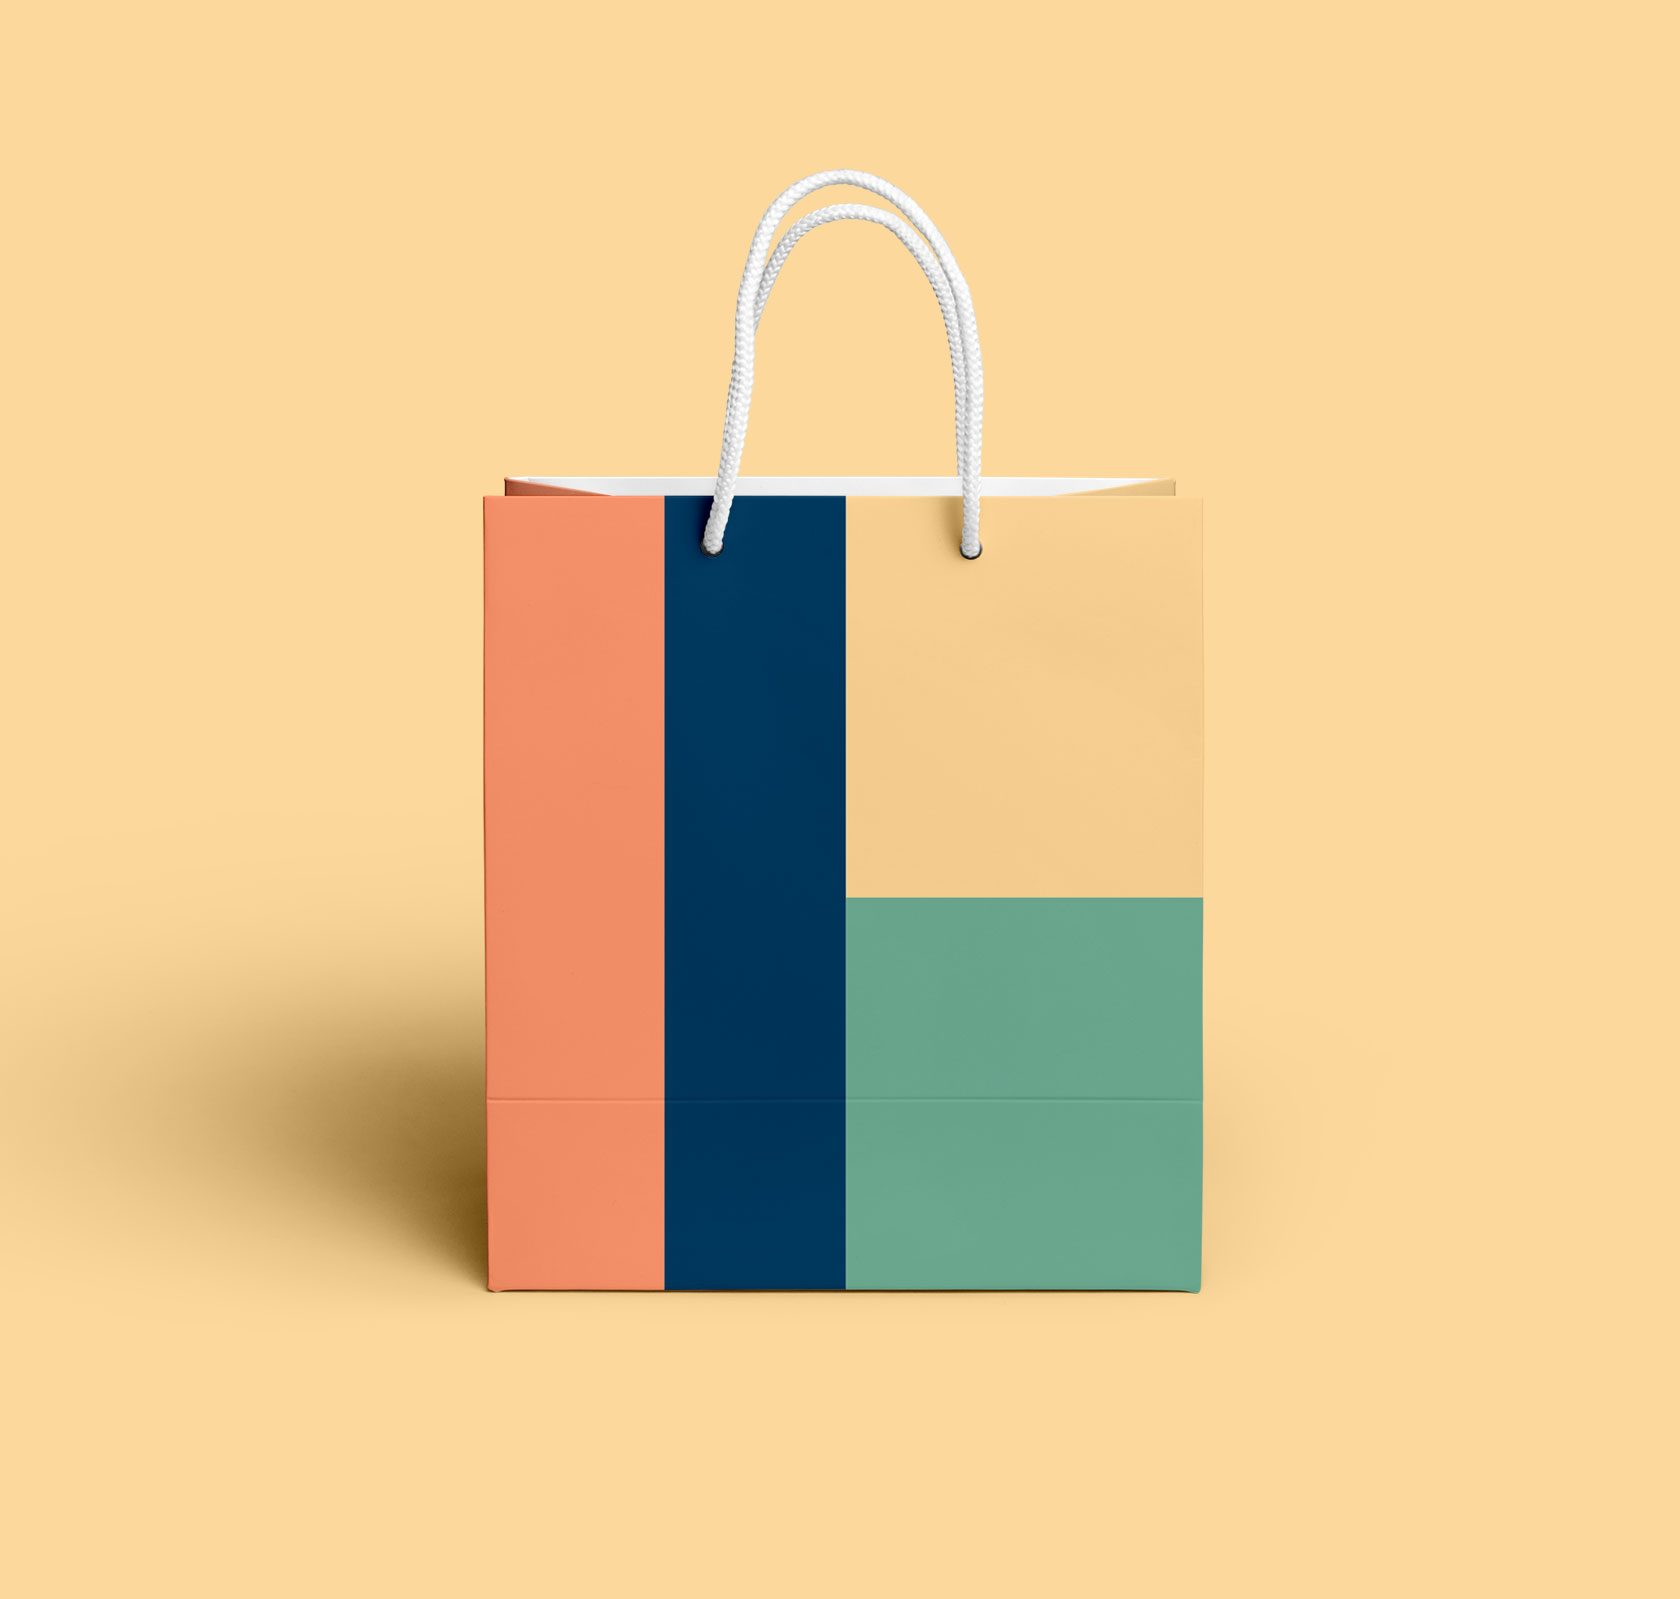 Petite Ocean Shopping Bag Design by Furia